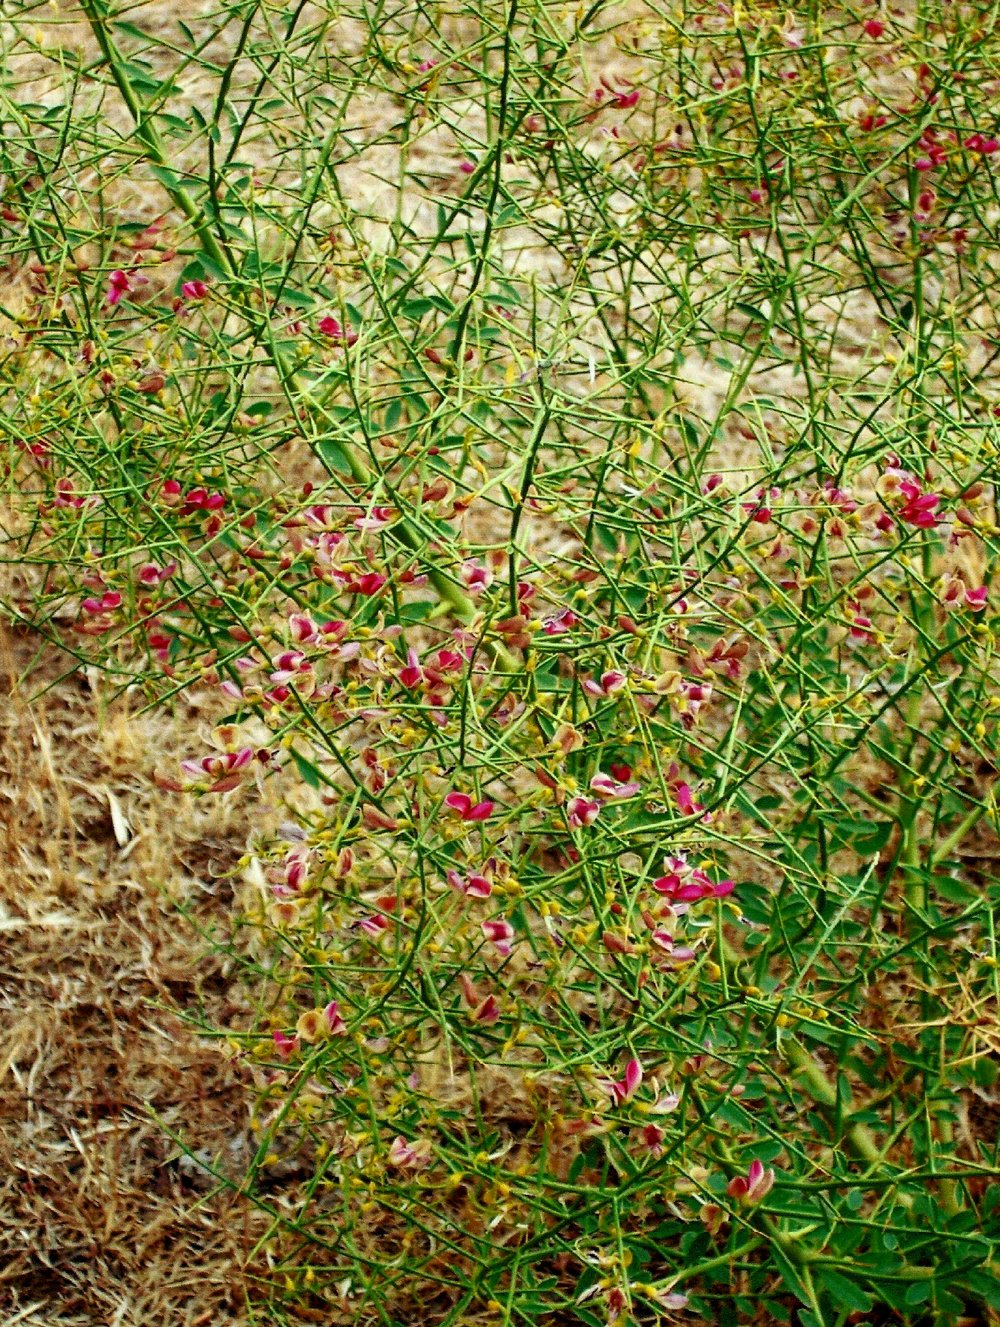 Camelthorn is not known to currently exist on the Colville Reservation, if you think you have found this plant please call 509-634-2338 to report it.